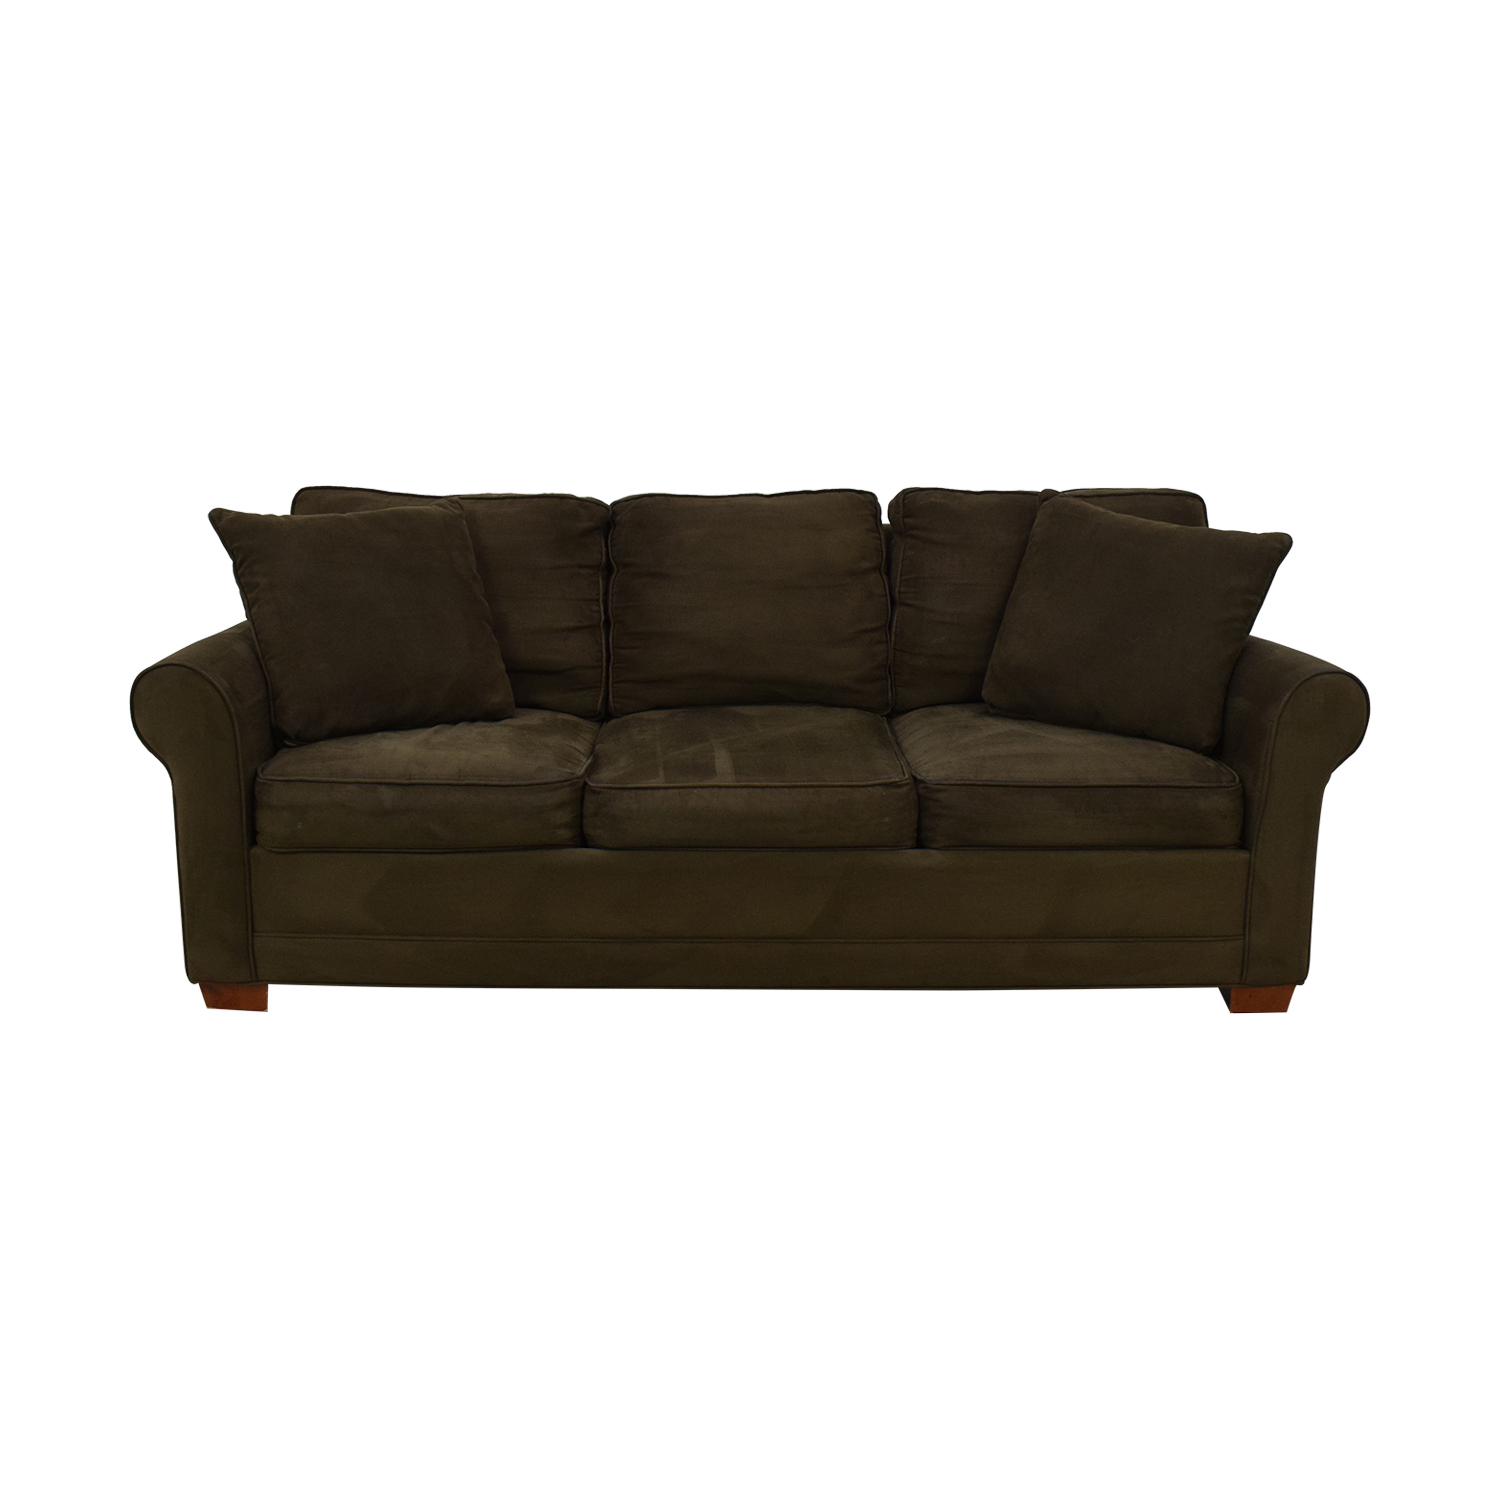 shop Raymour & Flanigan Fresno Brown Microfiber Sofa Raymour & Flanigan